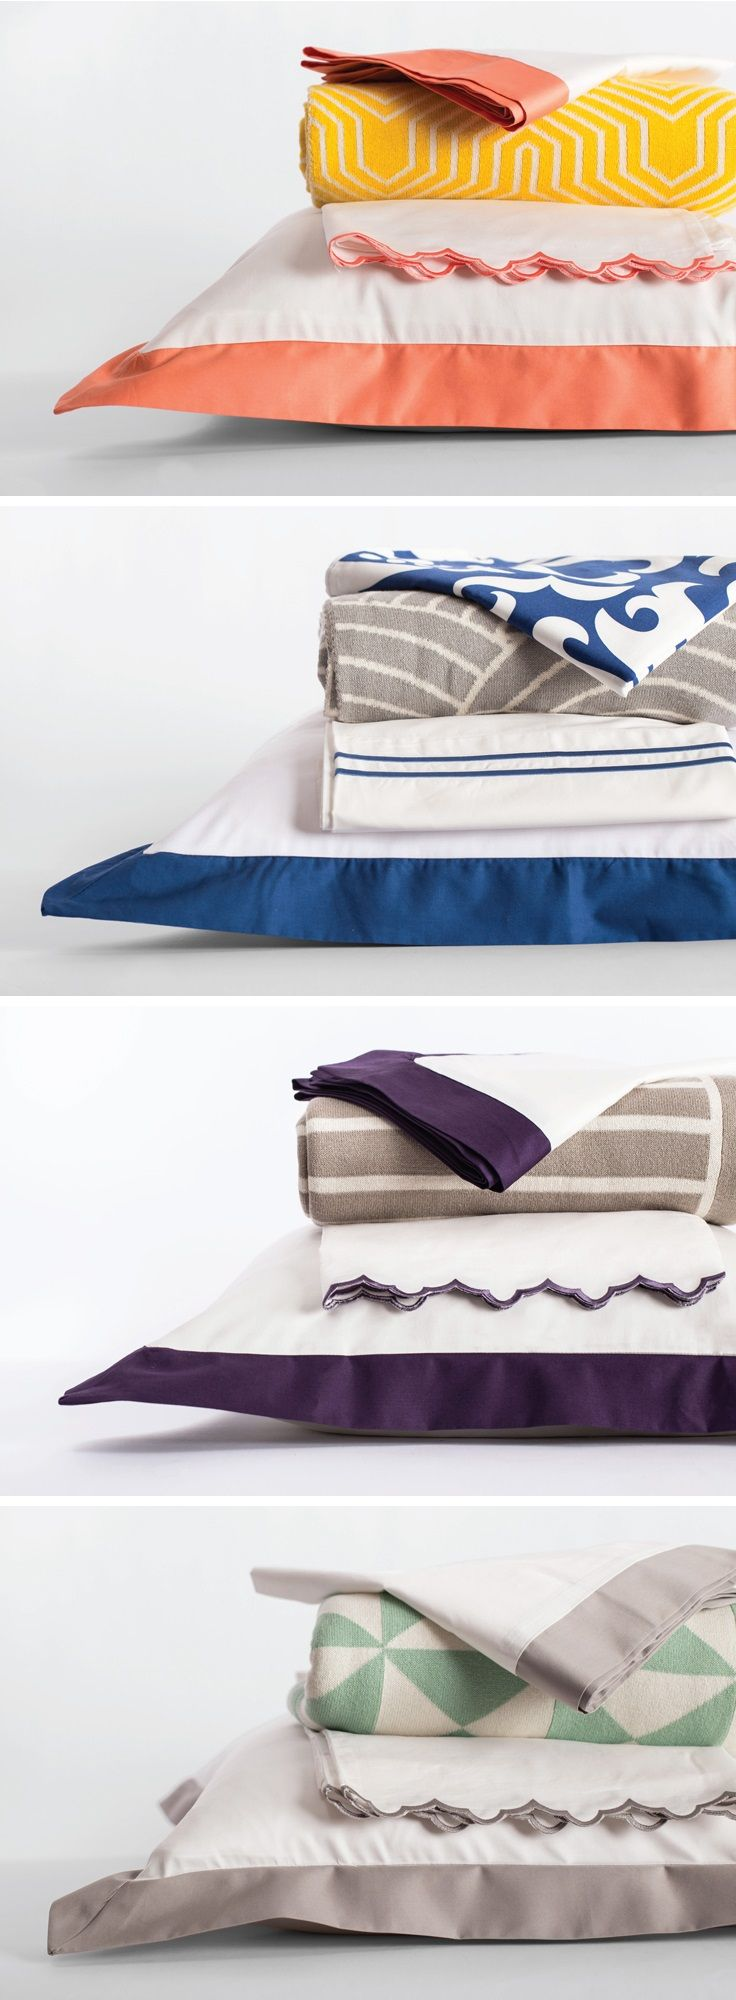 From luxury sheets to beautiful bedding and colorfully patterned duvets, Crane & Canopy has the perfect bedding for your style. Check them out...their bedding and fabrics are awesome!